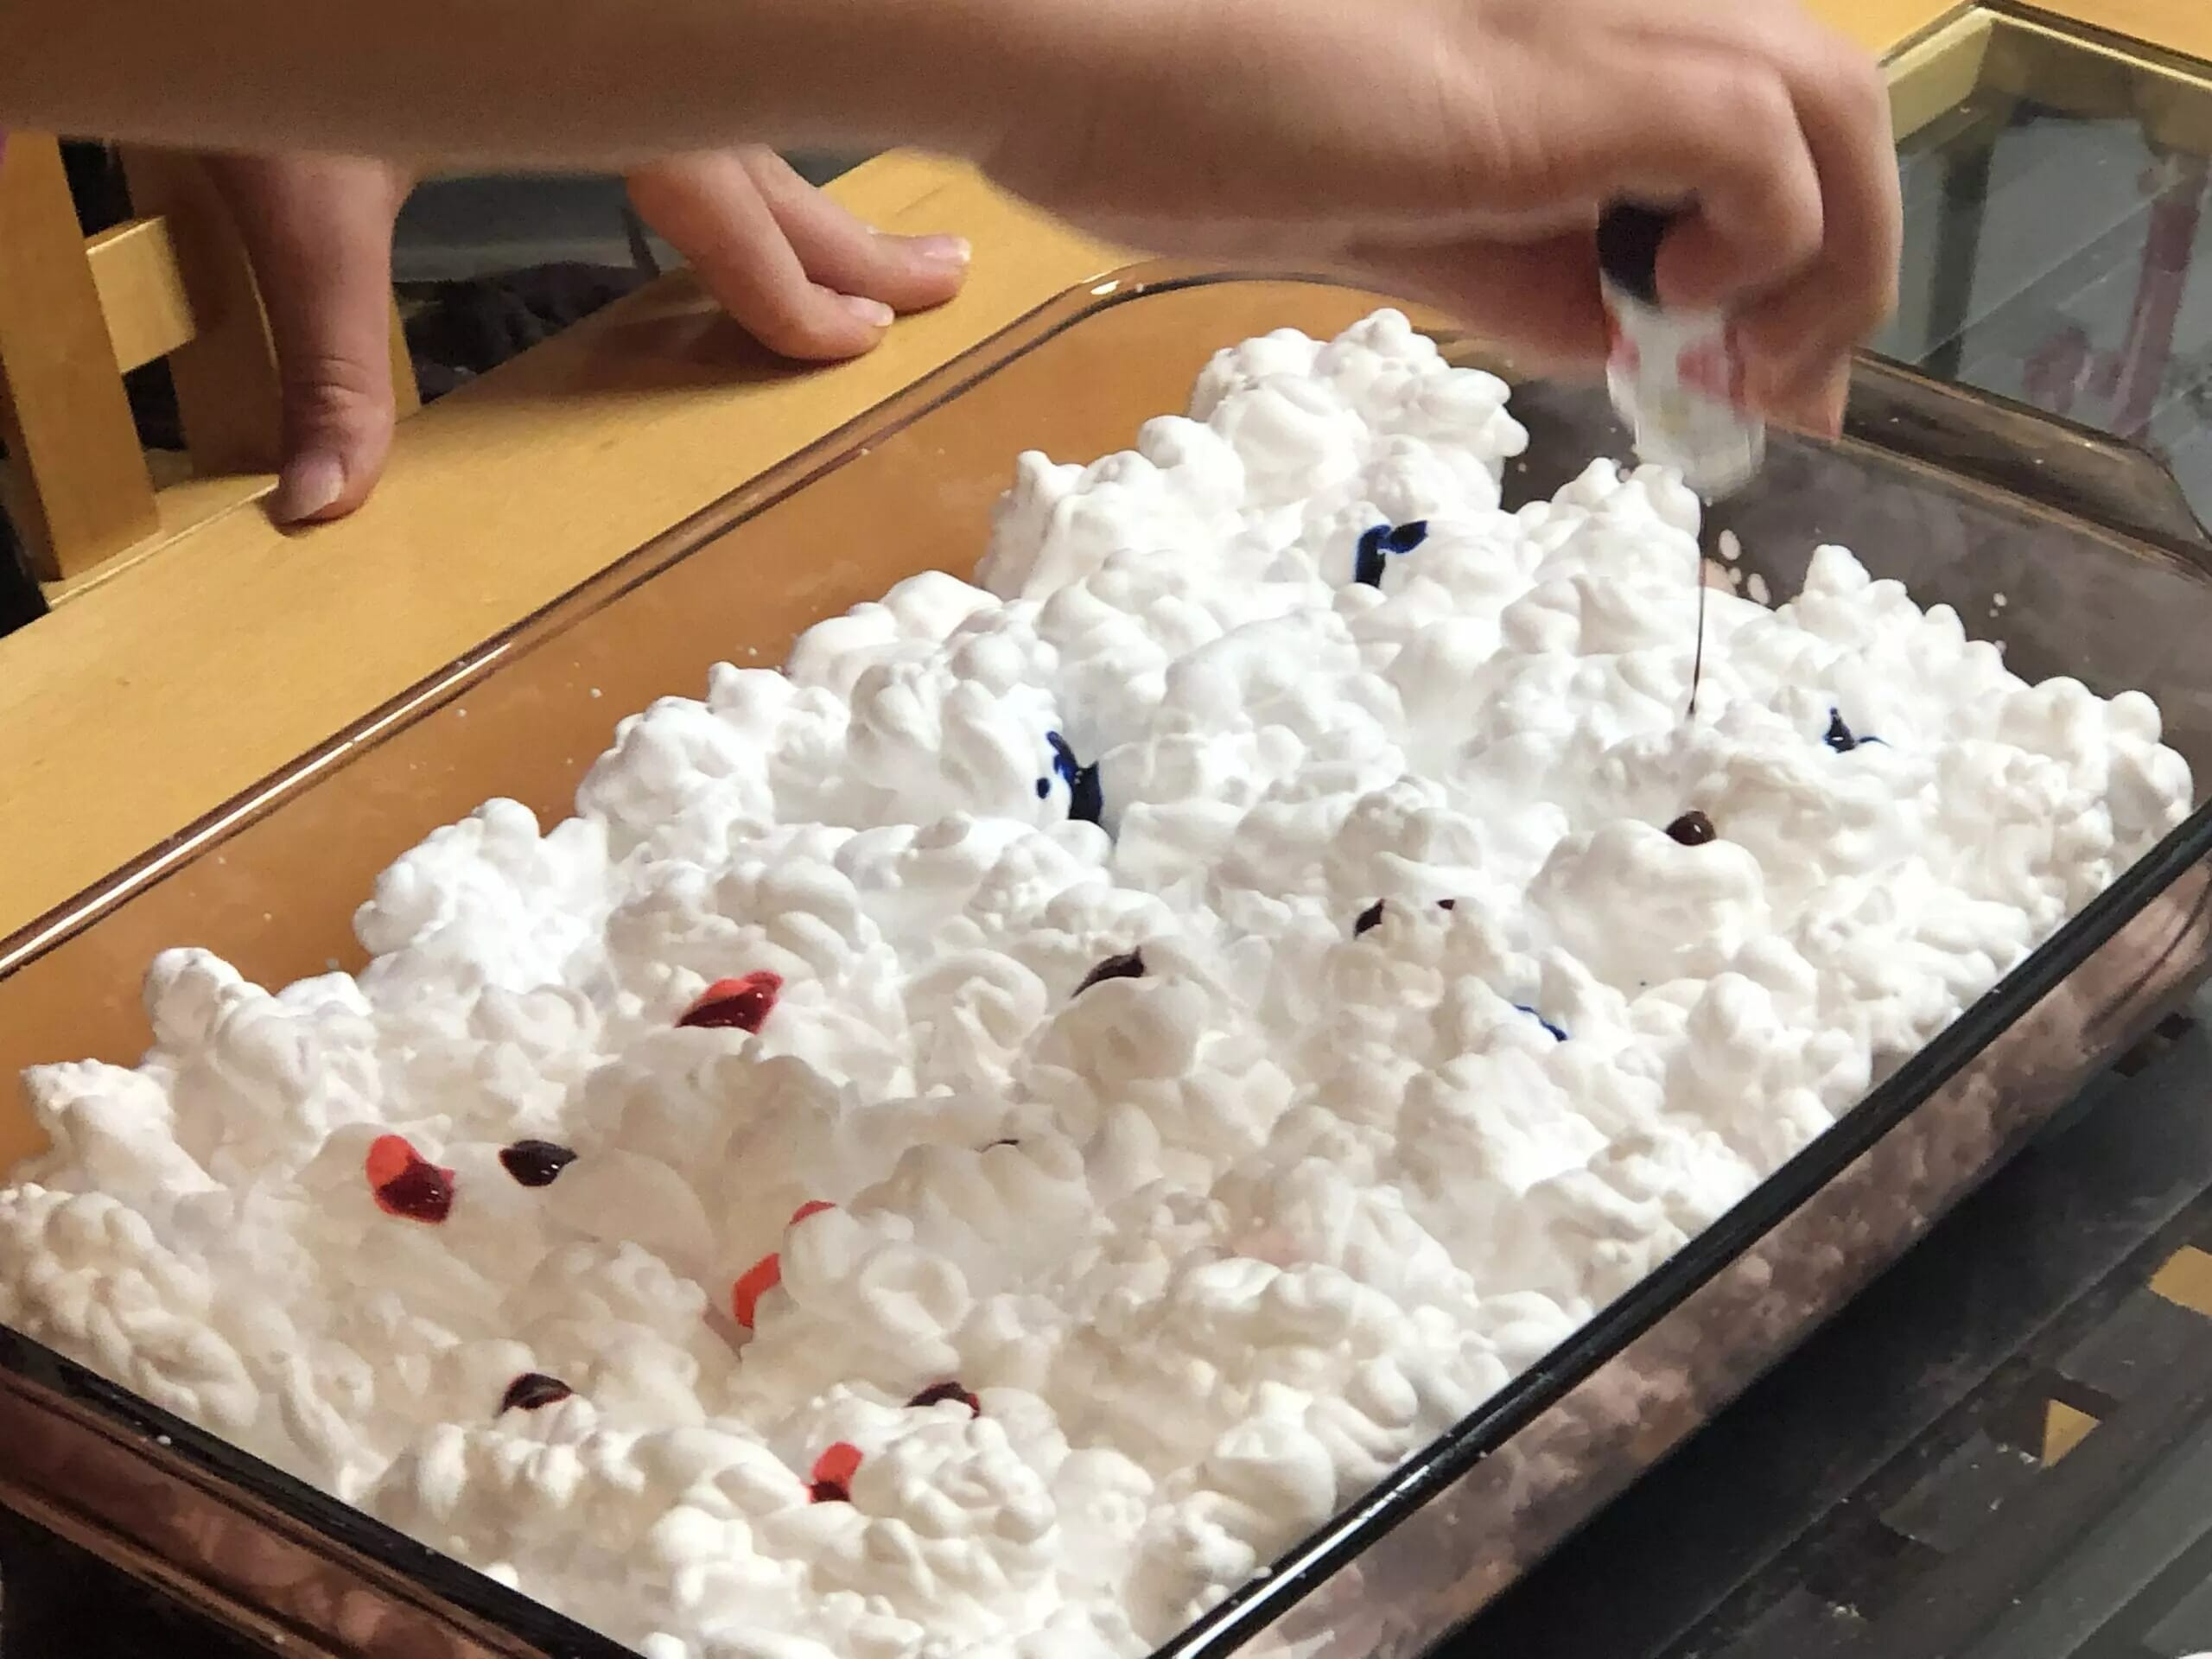 Add scattered drops of food coloring.